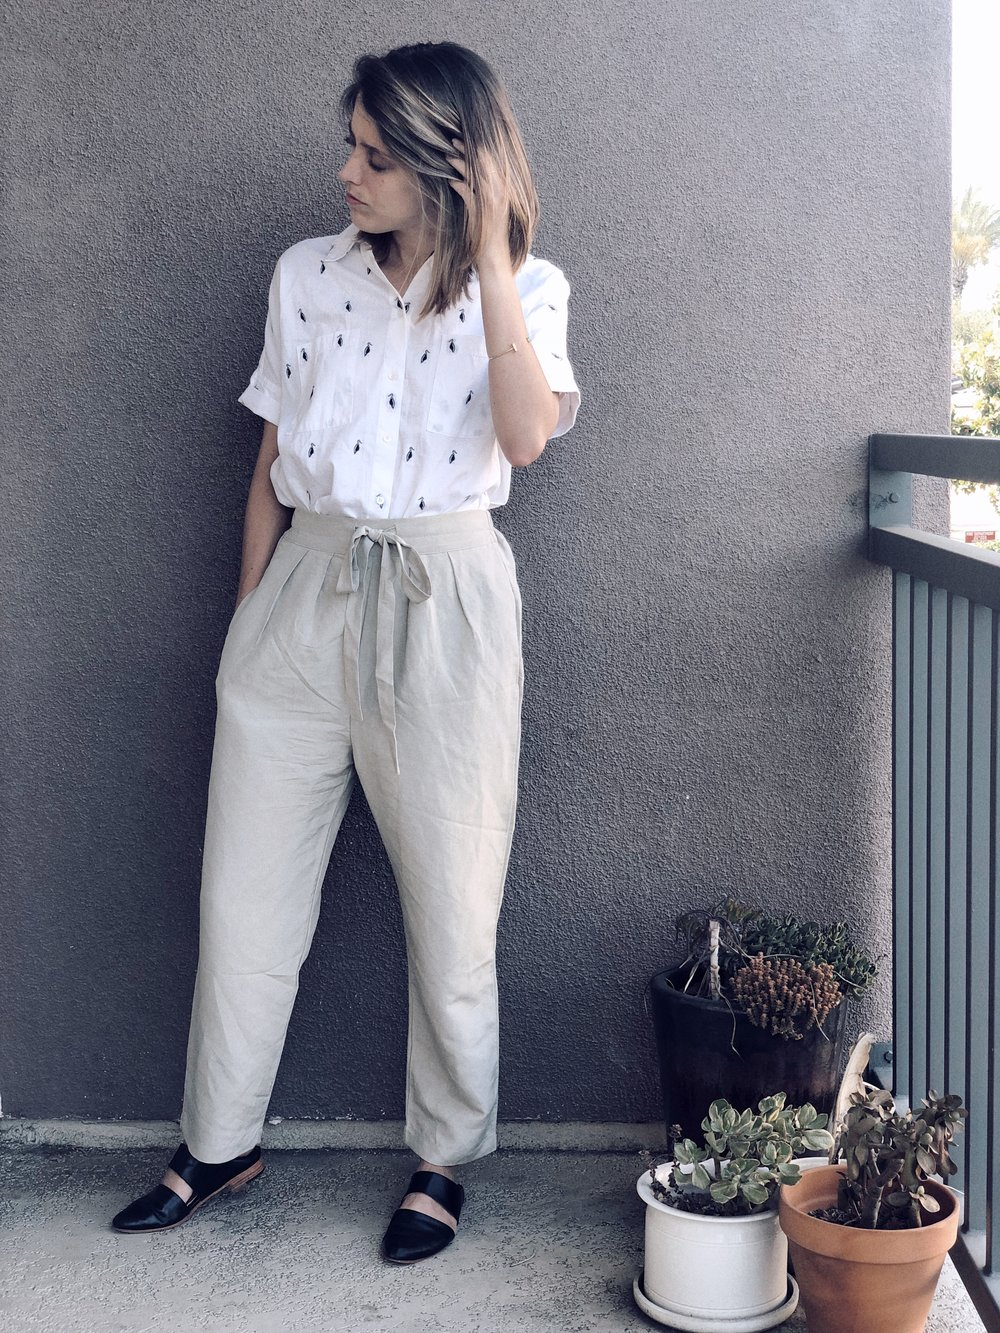 Top- Madewell via Poshmark; Pants- Ozma of California; Mules- ZouXou Shoes